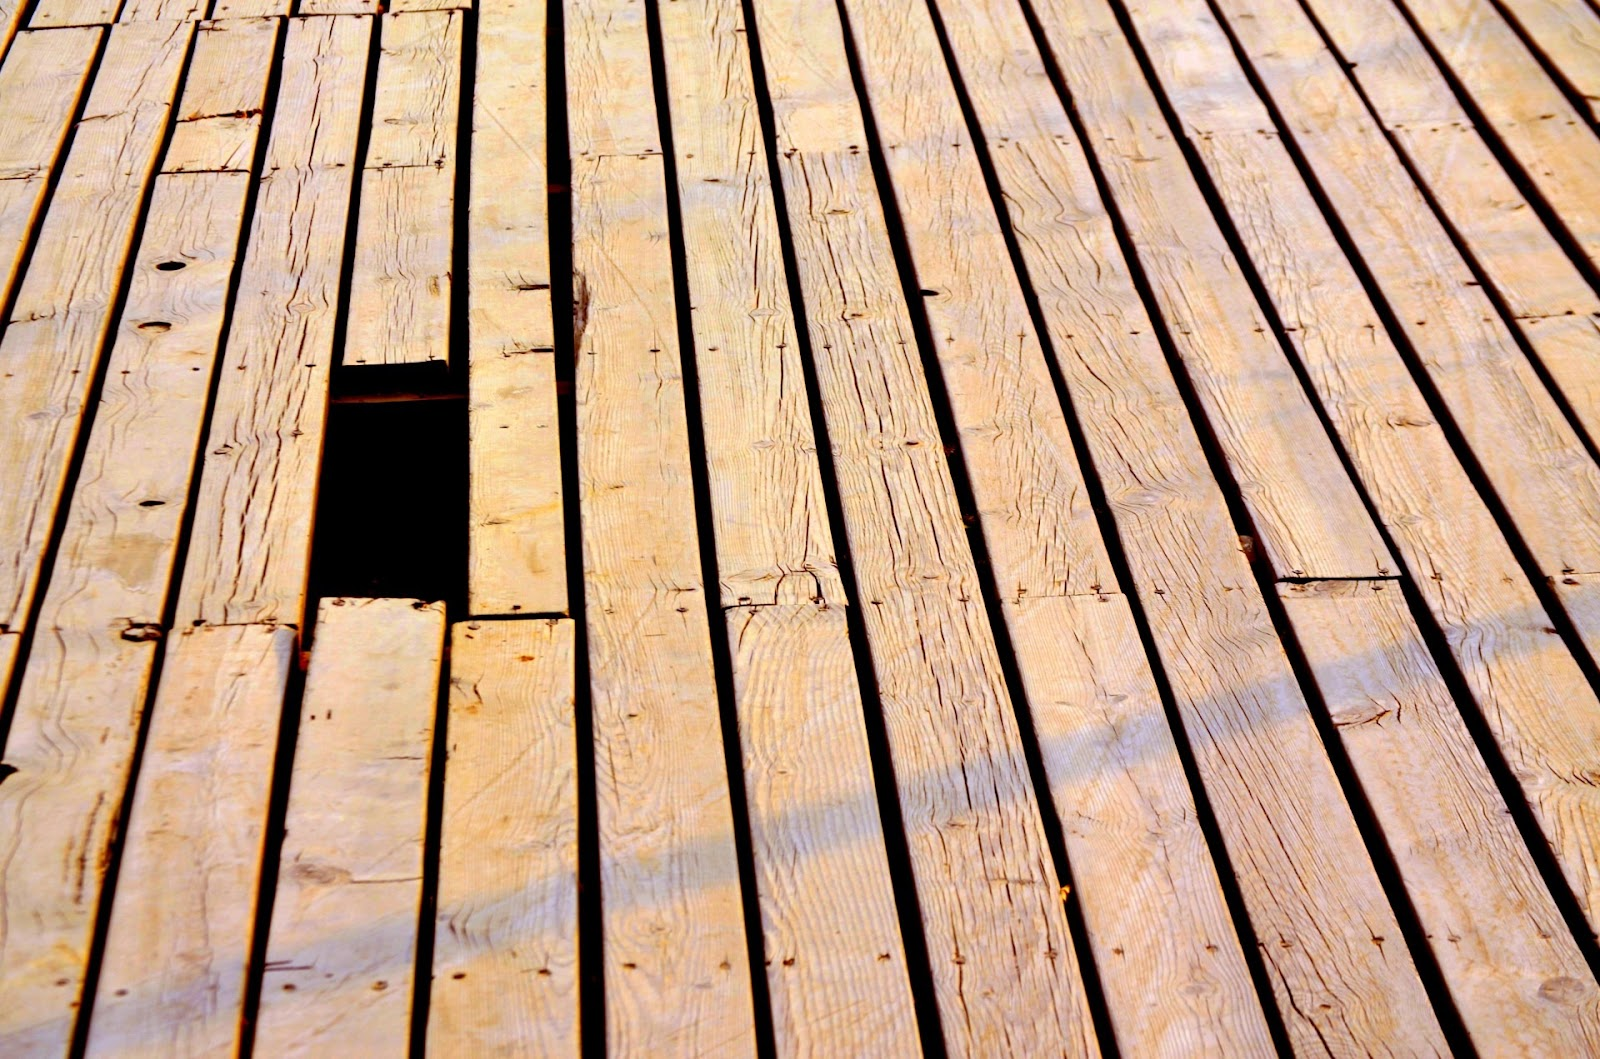 Hole in some wooden decking where it was weak